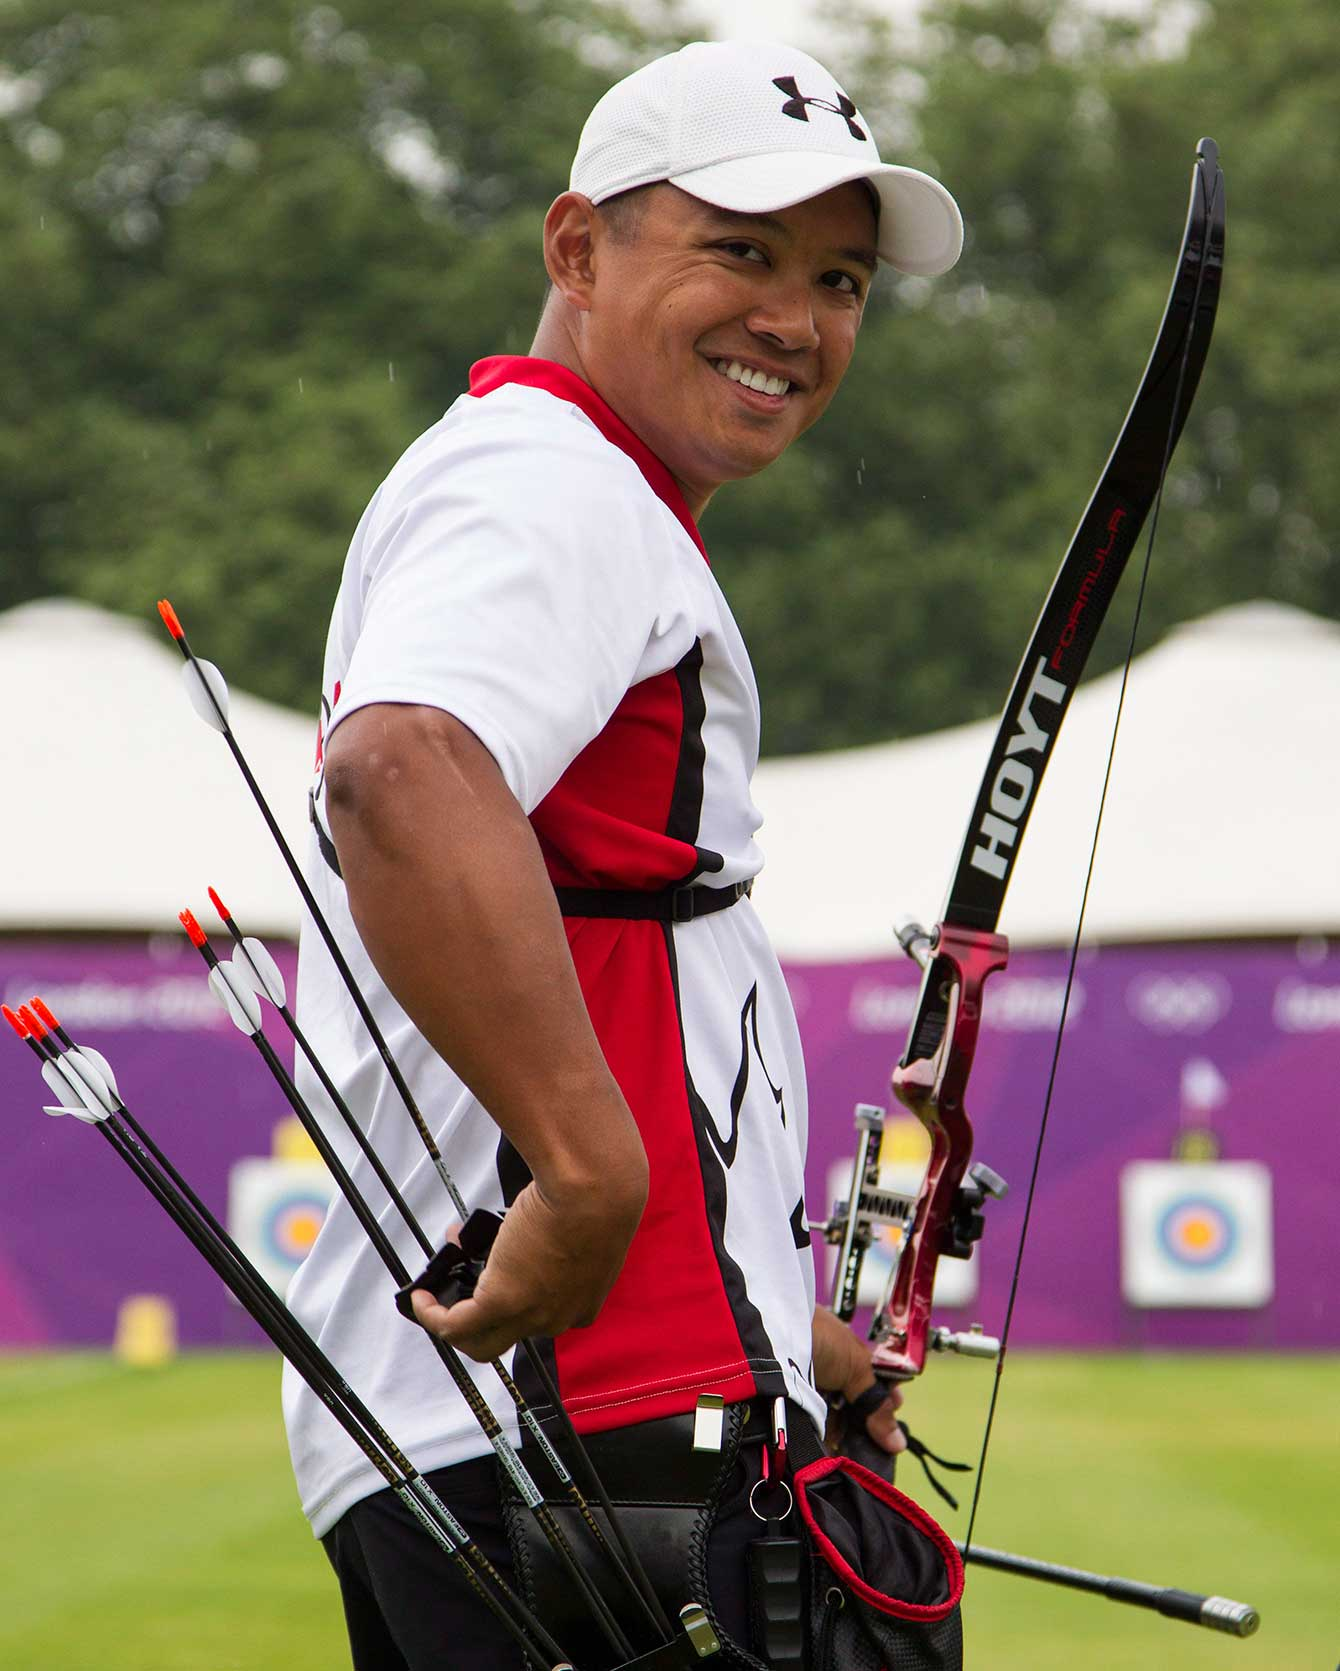 Crispin Duenas at London 2012, his second Olympic Games.